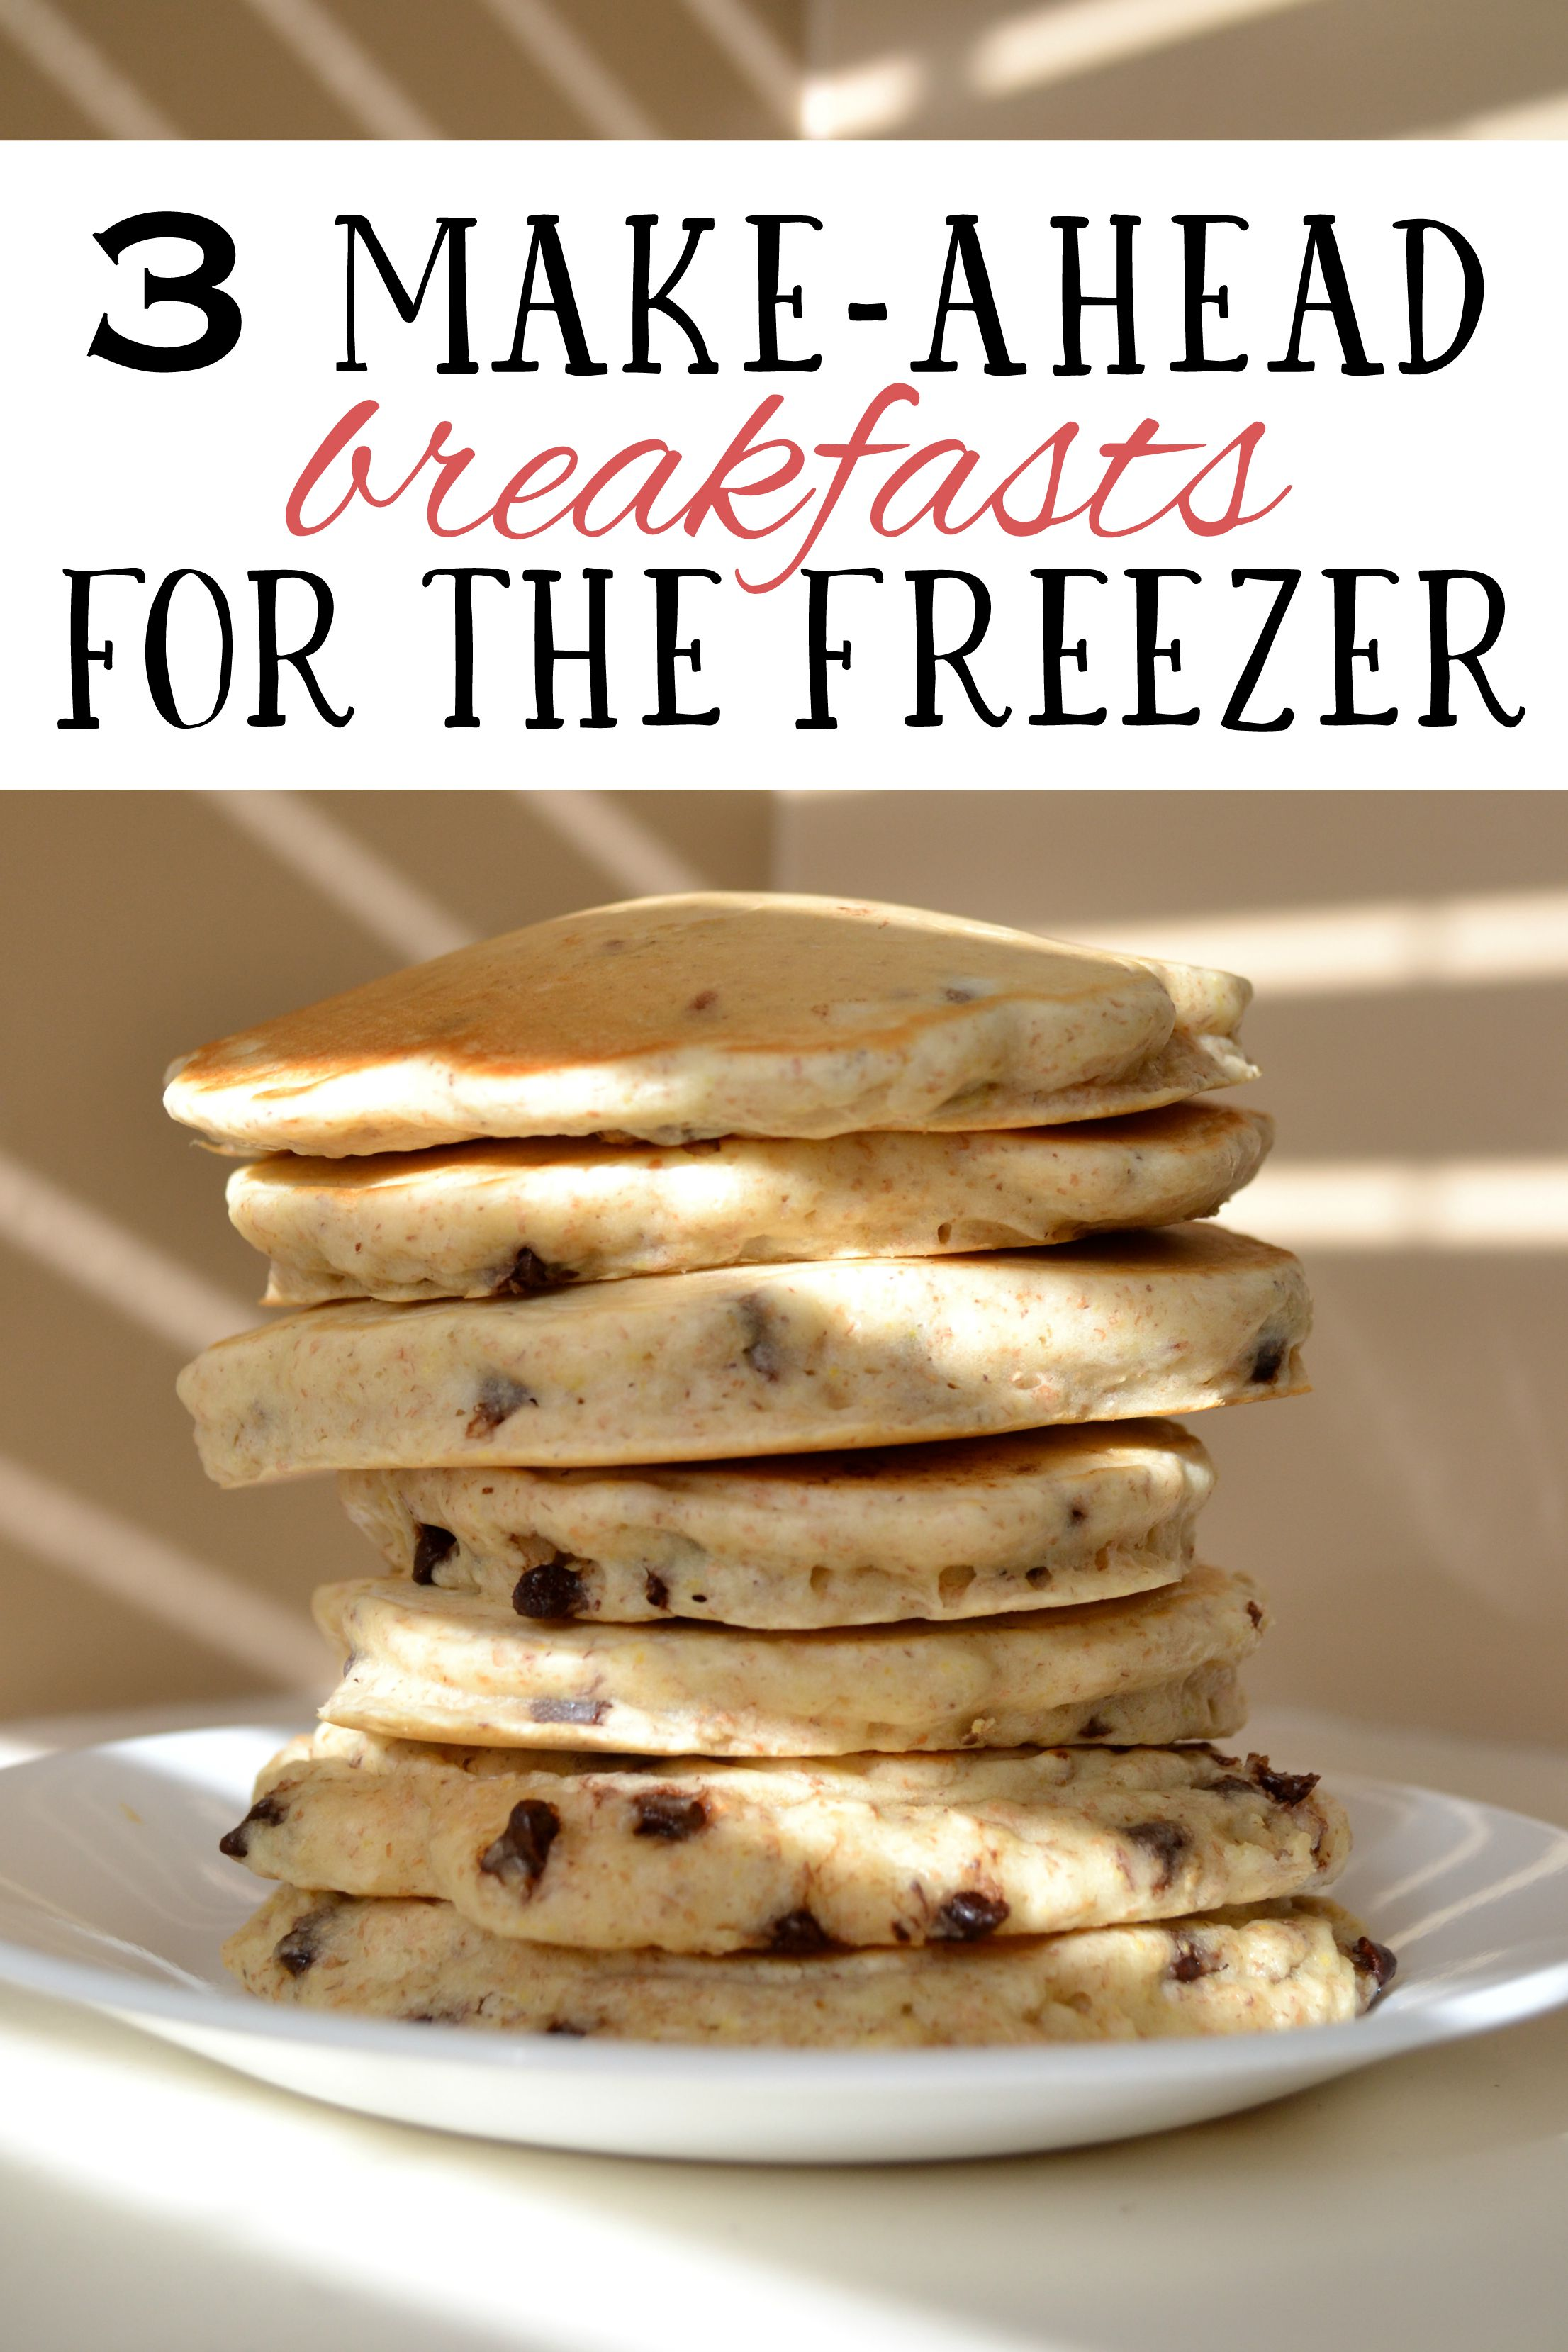 Your weekday mornings will be MUCH easier if you make large batches of these 3 simple and nutritious breakfasts, and storing them in the freezer.